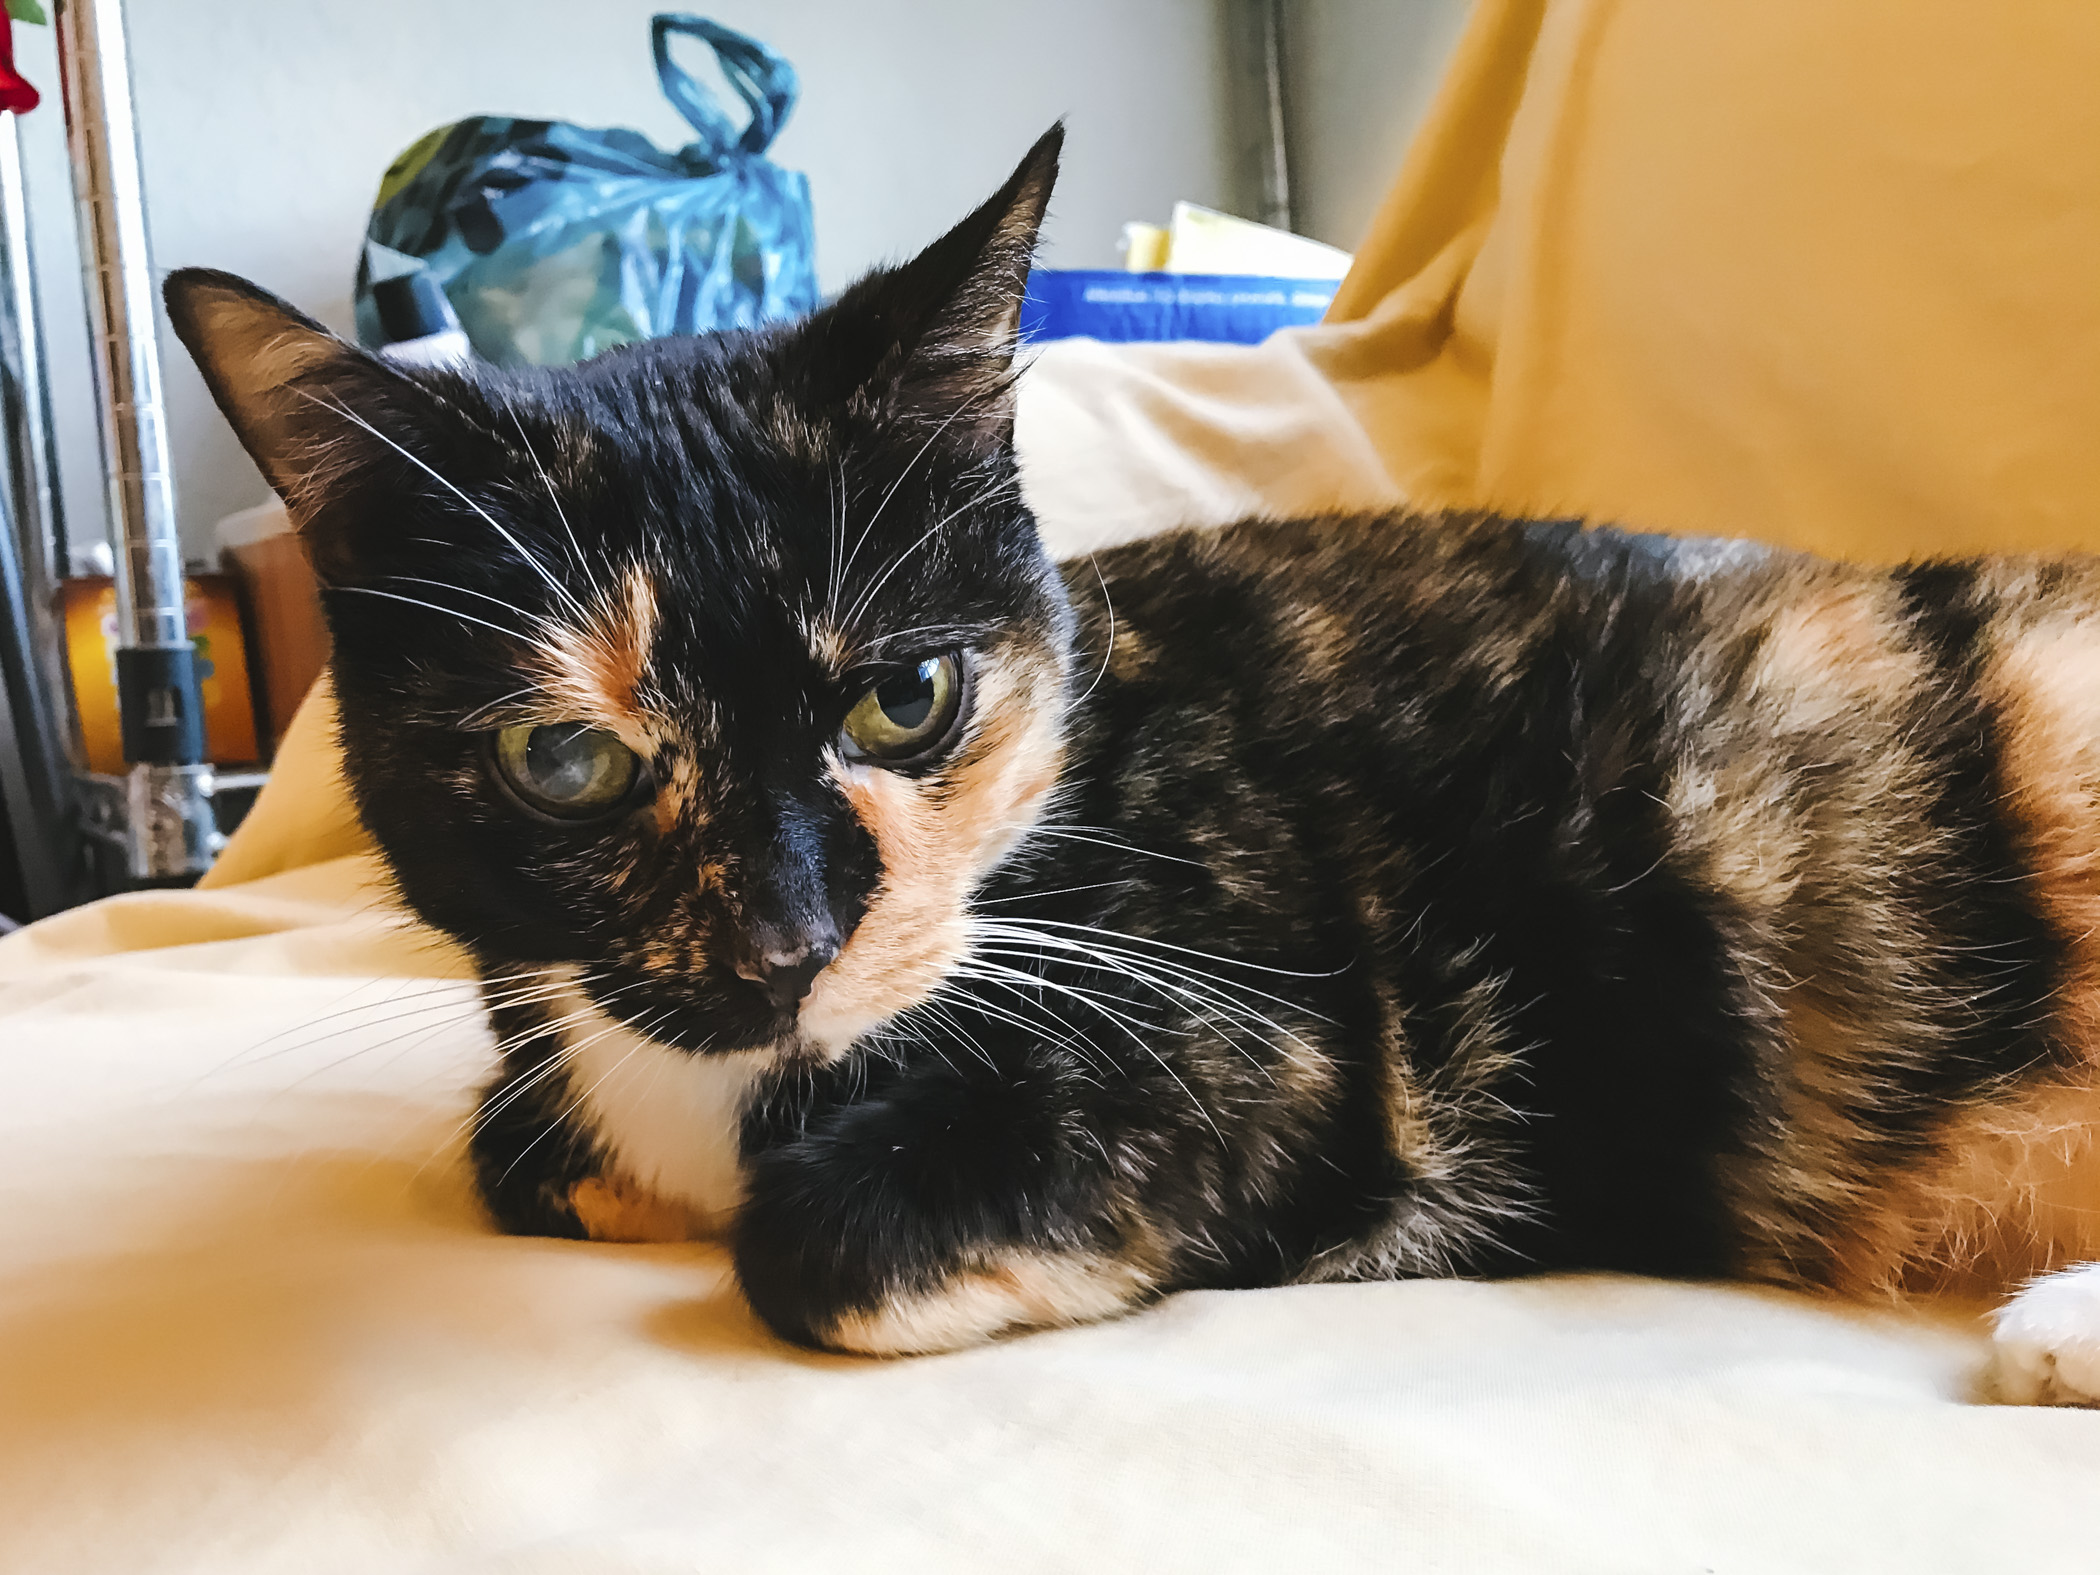 Meet Figaro Coi the 11-year-old Calico. This sweet cat was abandoned by previous owners at less than a year old, and has settled into his new home and has lived quite the life as a house cat in 'burbs. Figaro Coi likes sleep and more sleep, going on walks outside and the smell of flowers. He dislikes children, loud noises and the vet.{ }The Seattle RUFFined Spotlight is a weekly profile of local pets living and loving life in the PNW. If you or someone you know has a pet you'd like featured, email us at hello@seattlerefined.com or tag #SeattleRUFFined and your furbaby could be the next spotlighted! (Image: Sunita Martini / Seattle Refined).